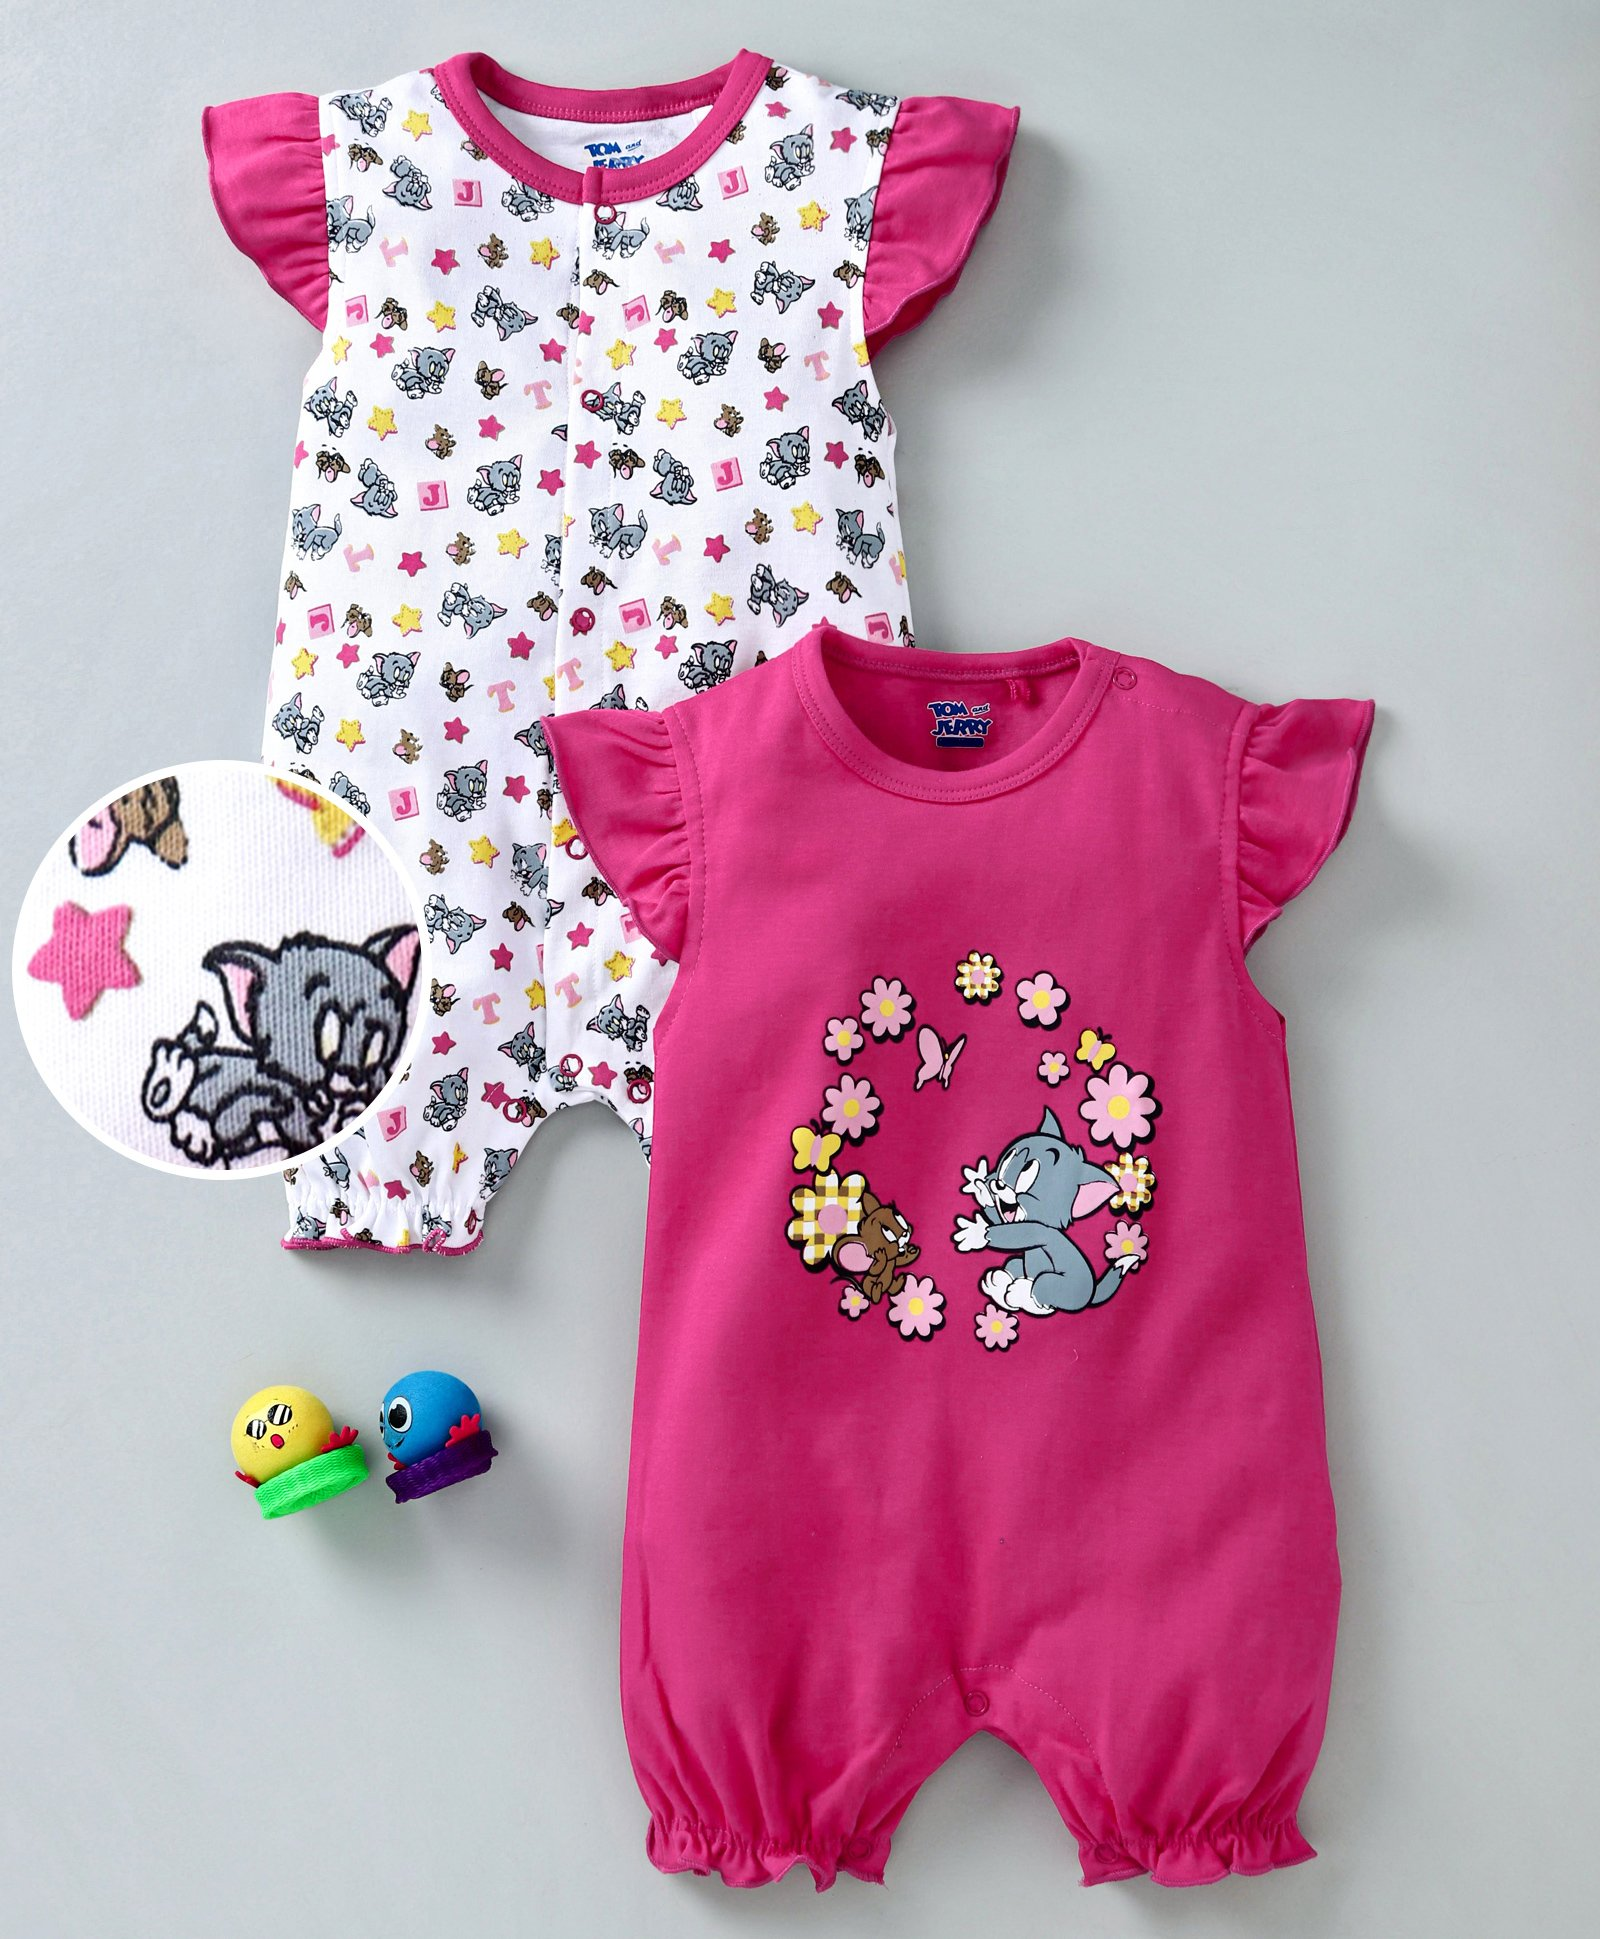 045dafc91e8 Mom s Love Cap Sleeves Rompers Tom   Jerry Print Pack of 2 - Pink White